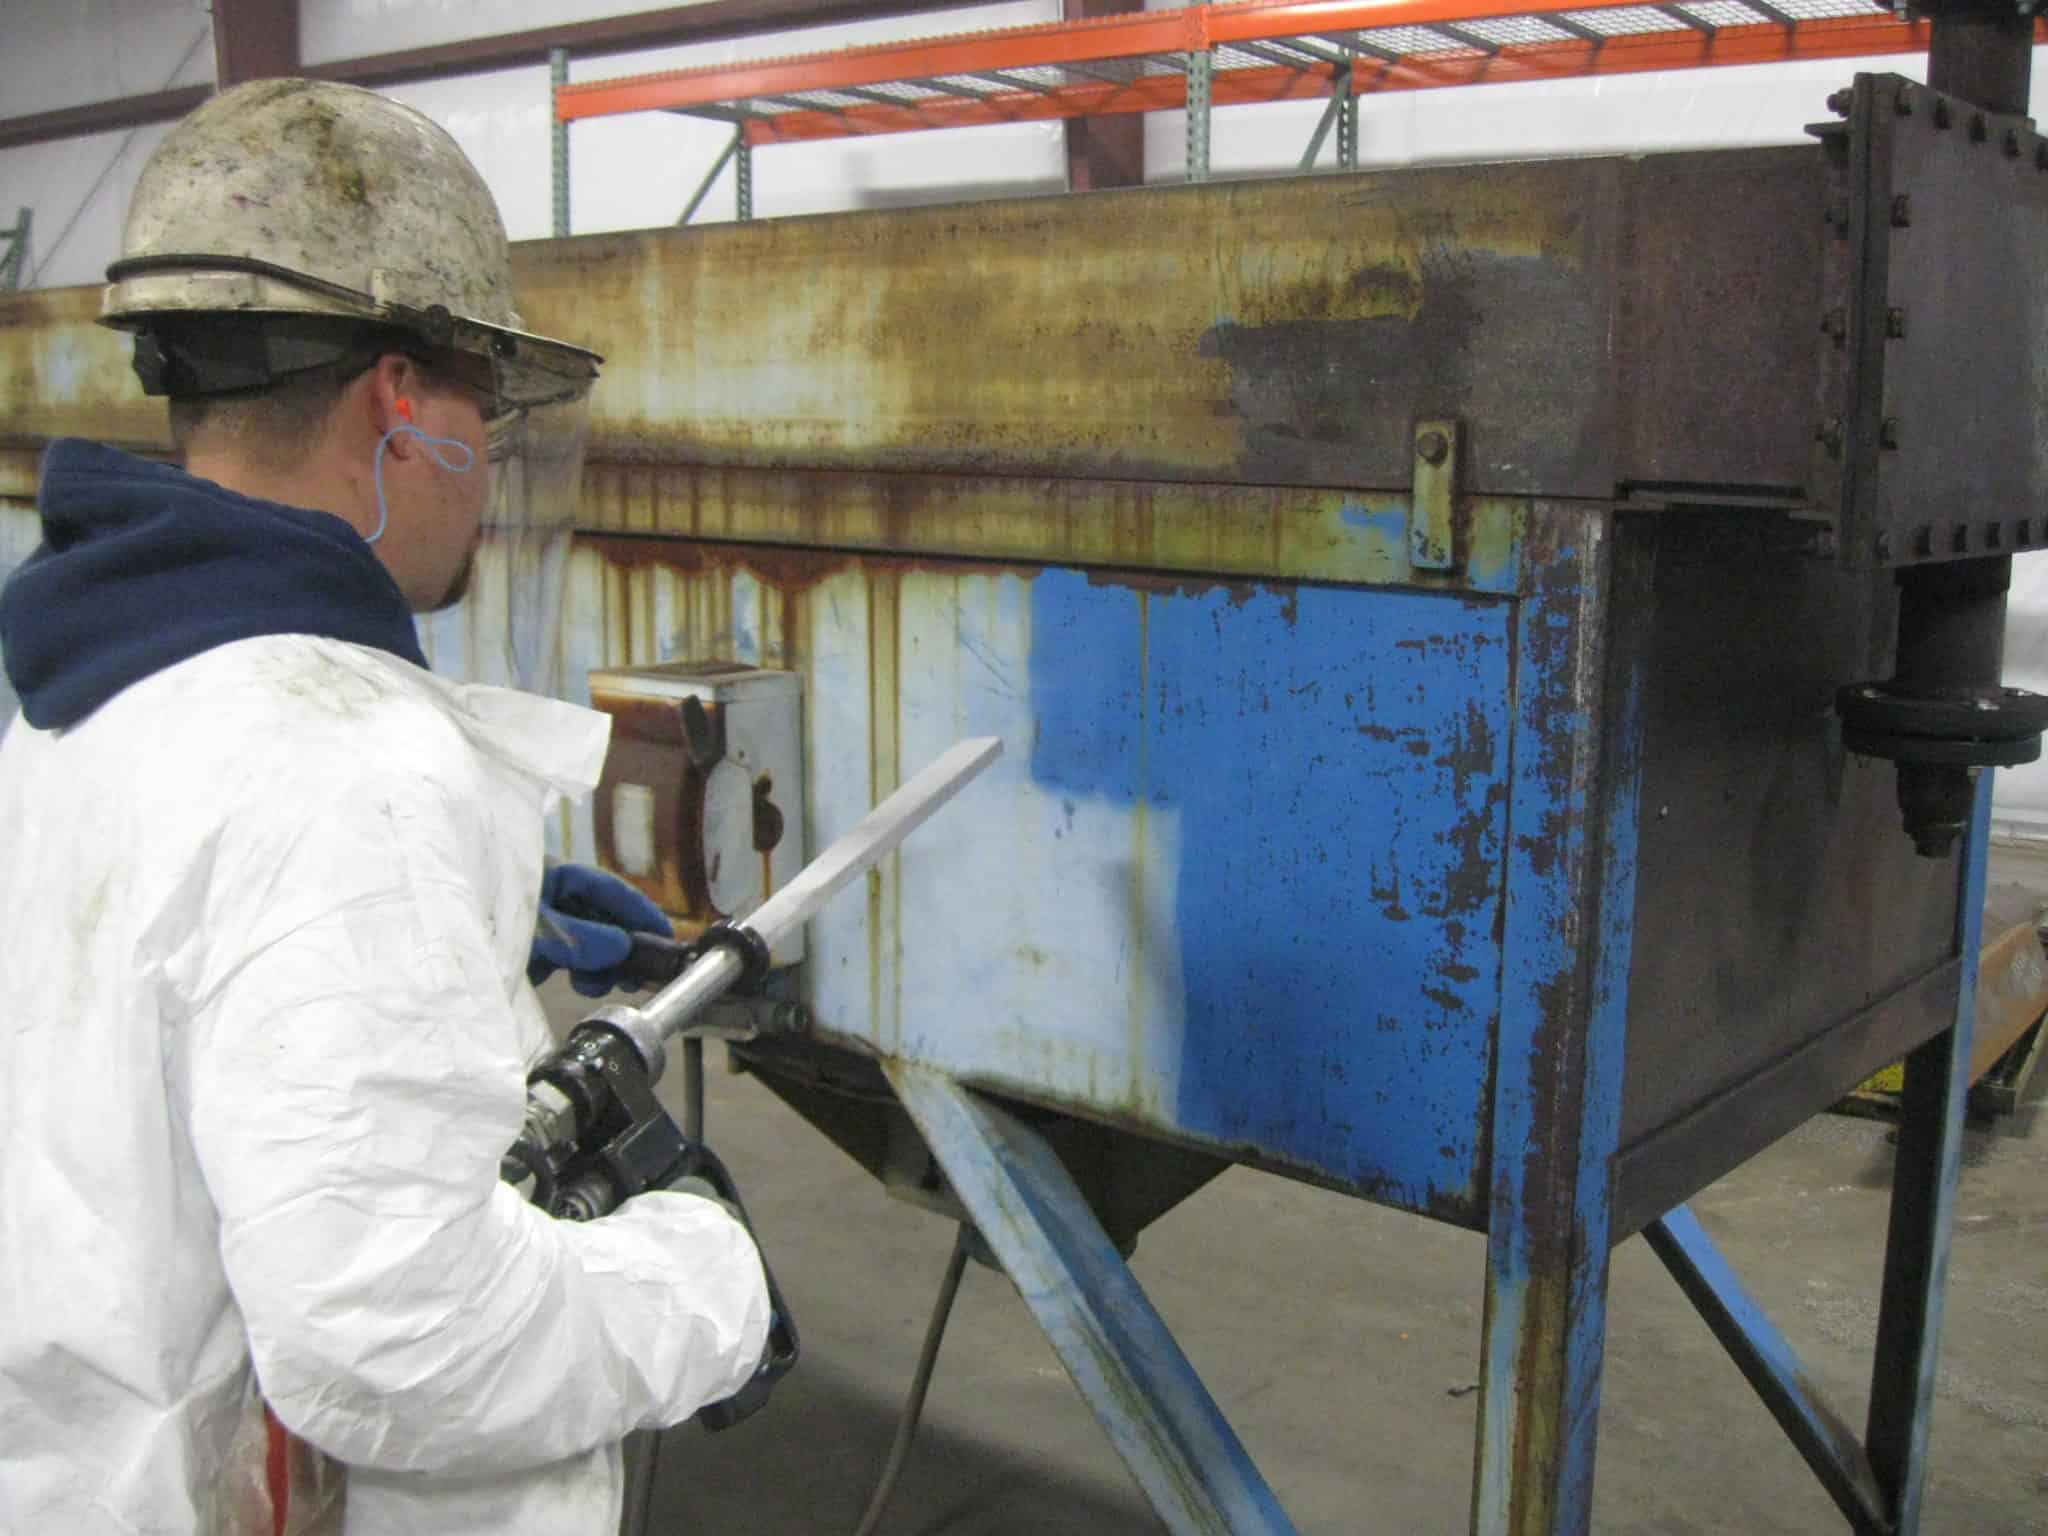 Dry ice blasting equipment prepping for repaint